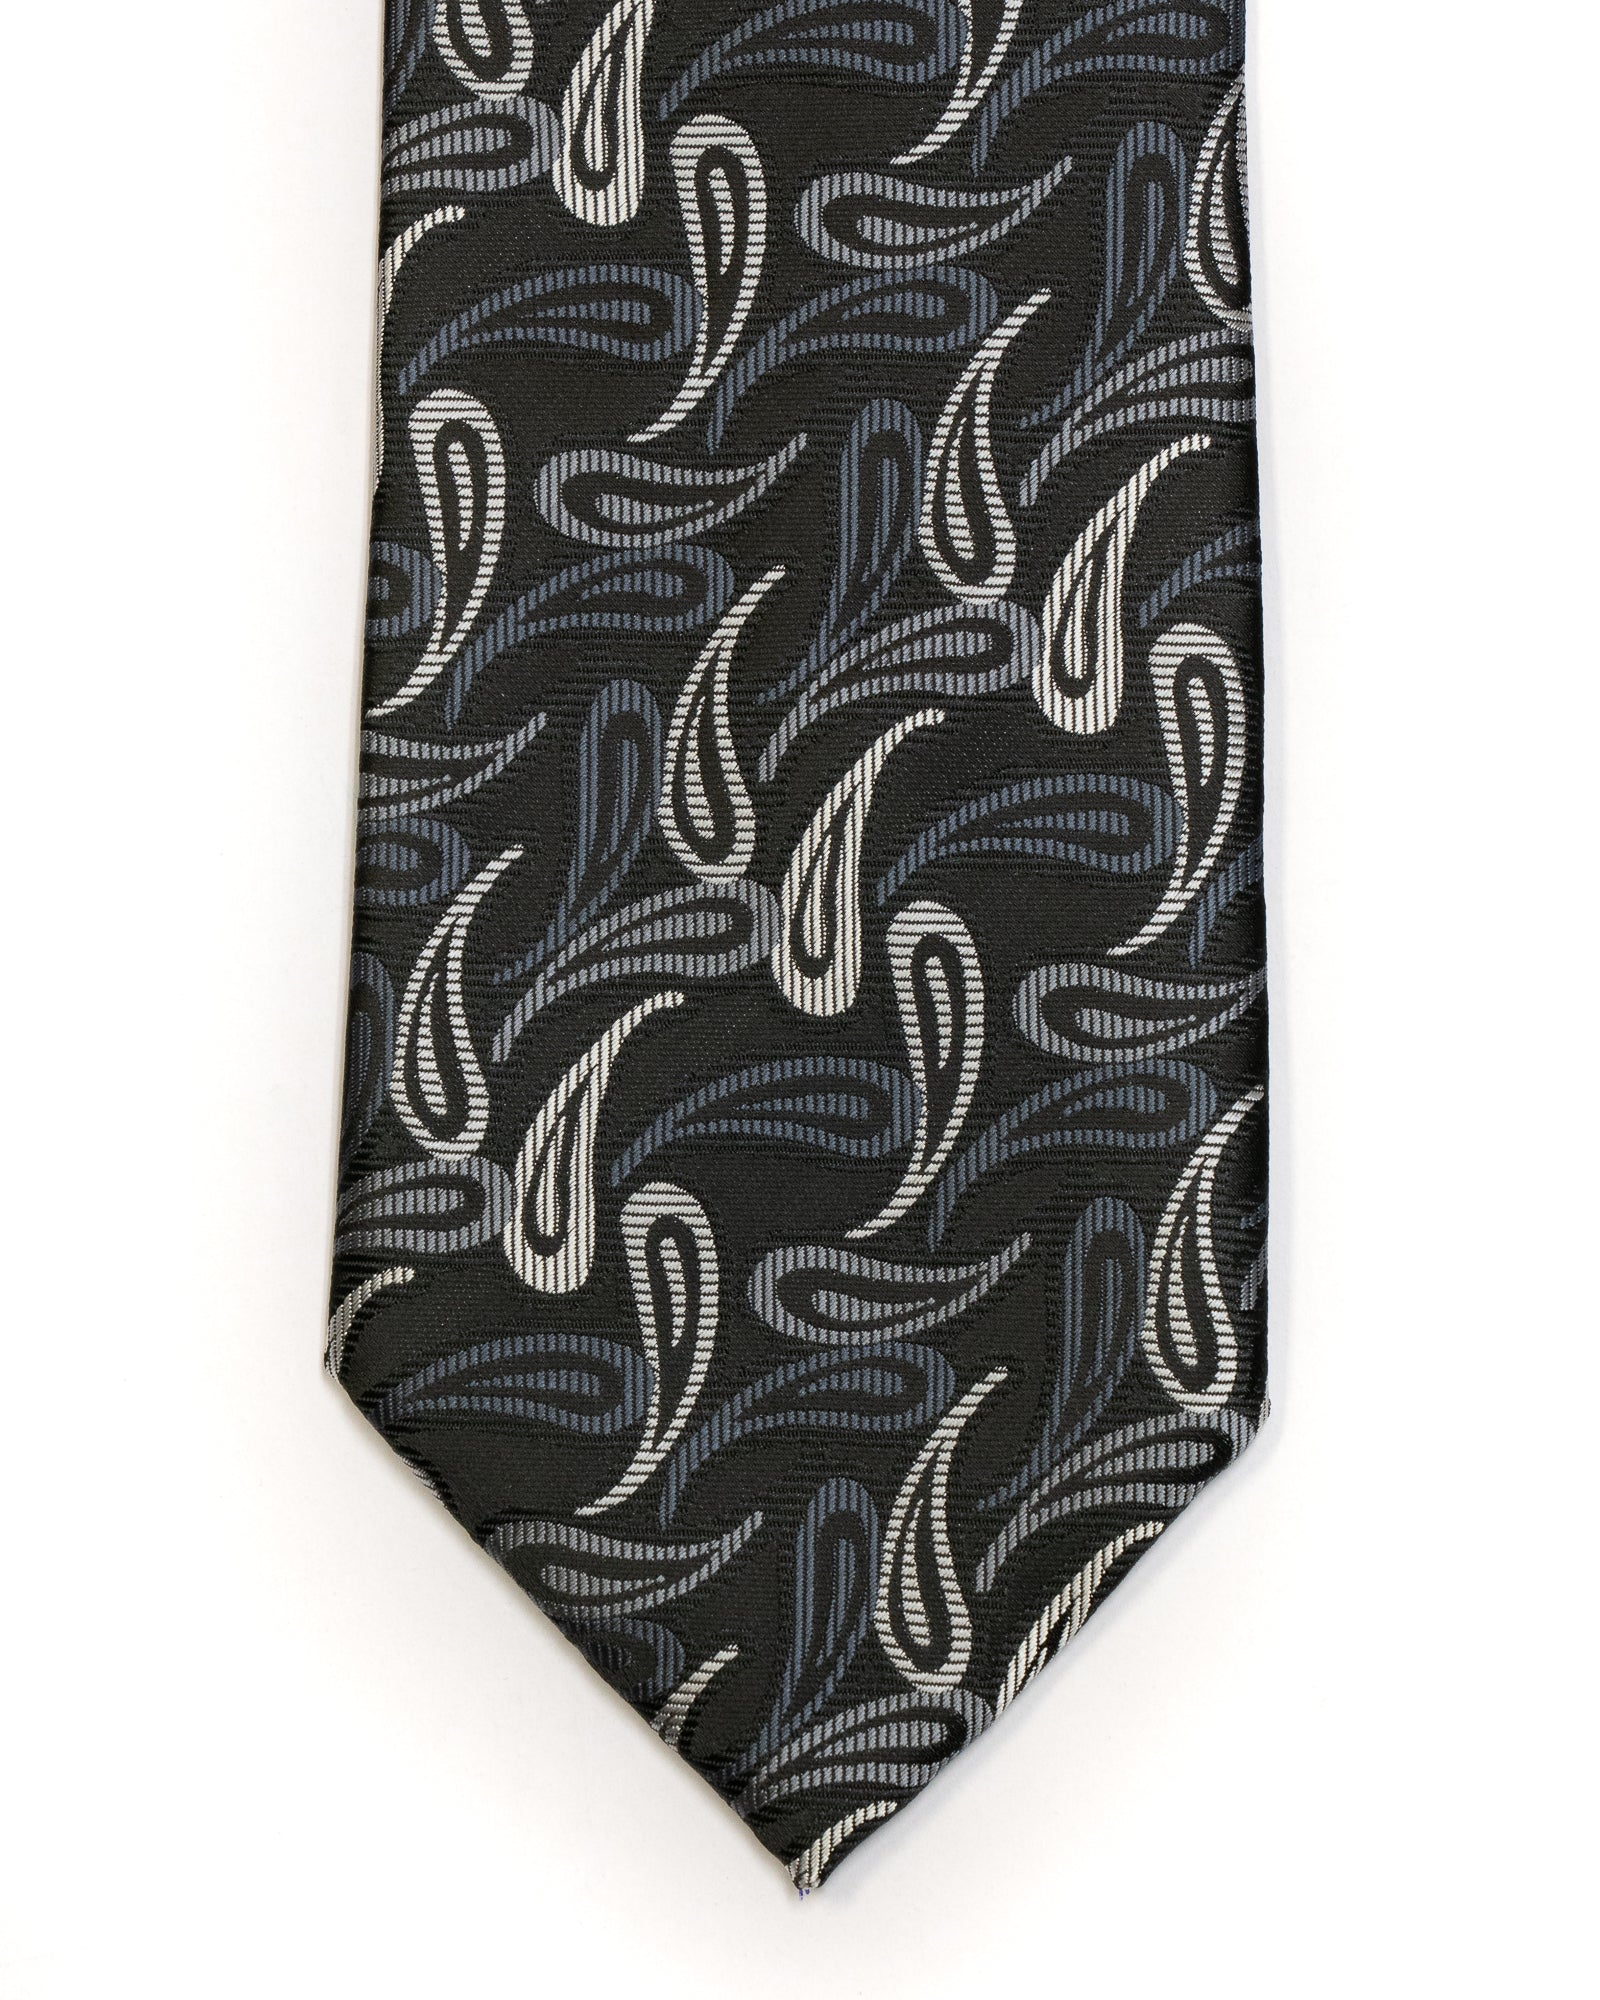 Gianfranco Paisley Tie in Black with Grey - Rainwater's Men's Clothing and Tuxedo Rental